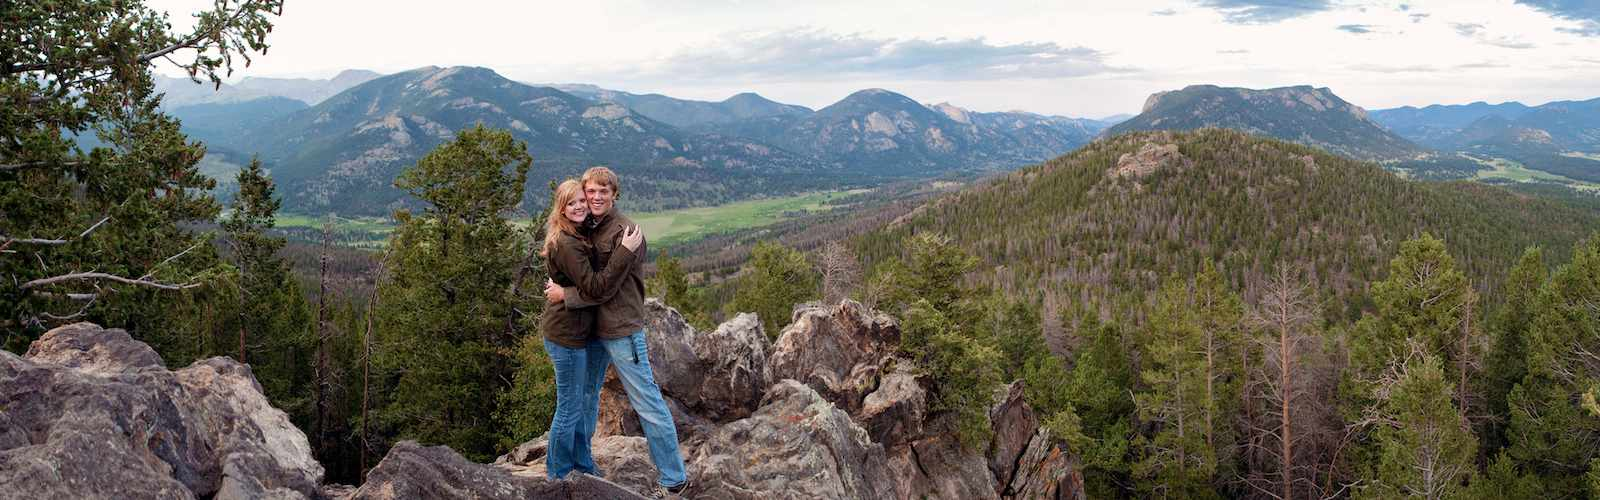 A Mountaintop Engagement